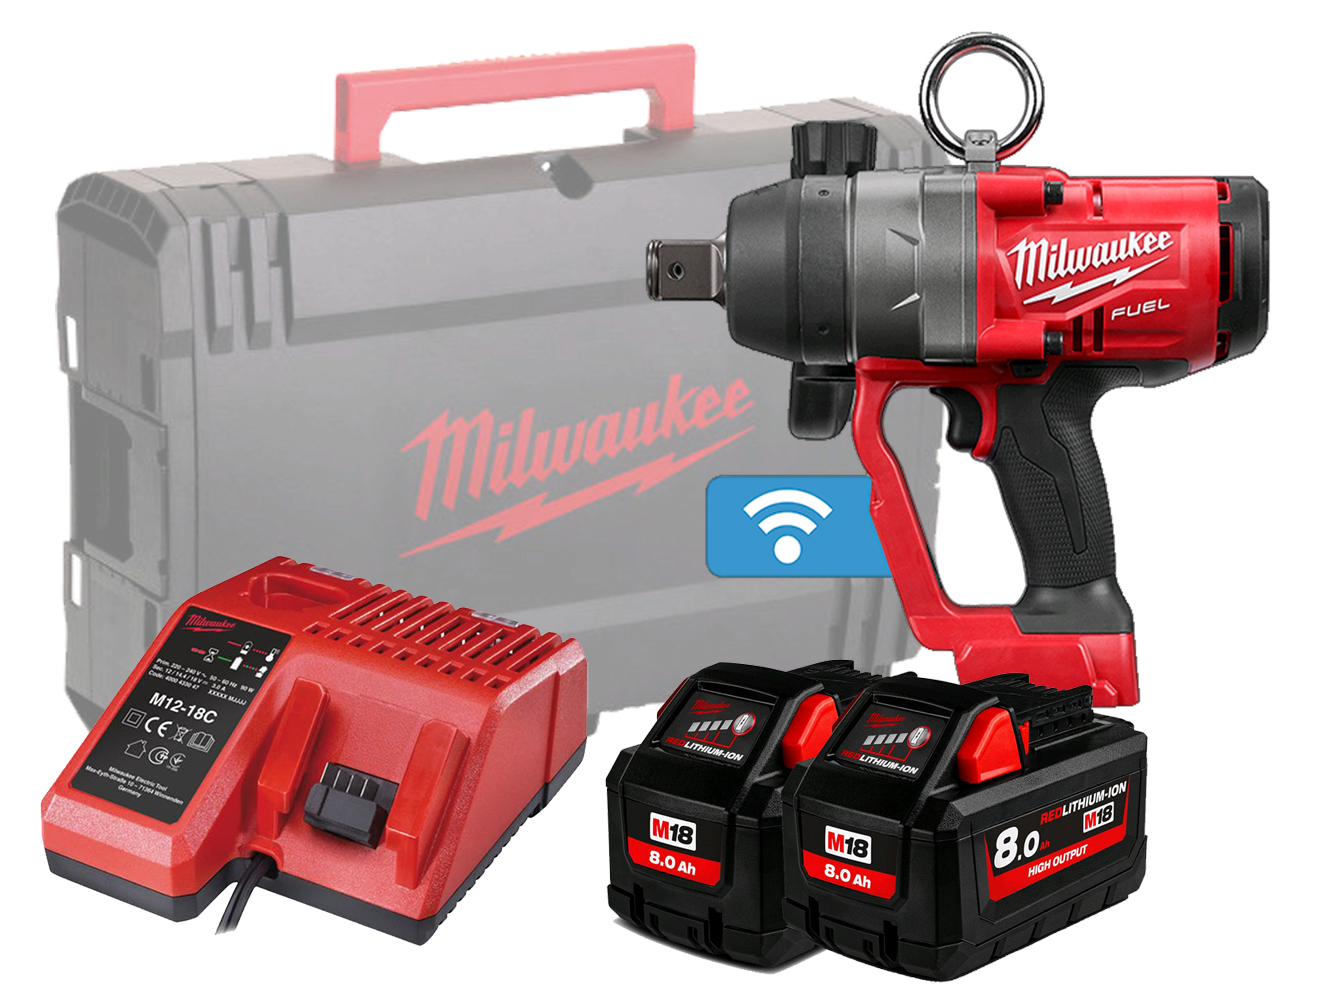 Milwaukee M18ONEFHIWF1 One-Key 18V 1In Heavy-Duty Impact Wrench - 8.0Ah Pack